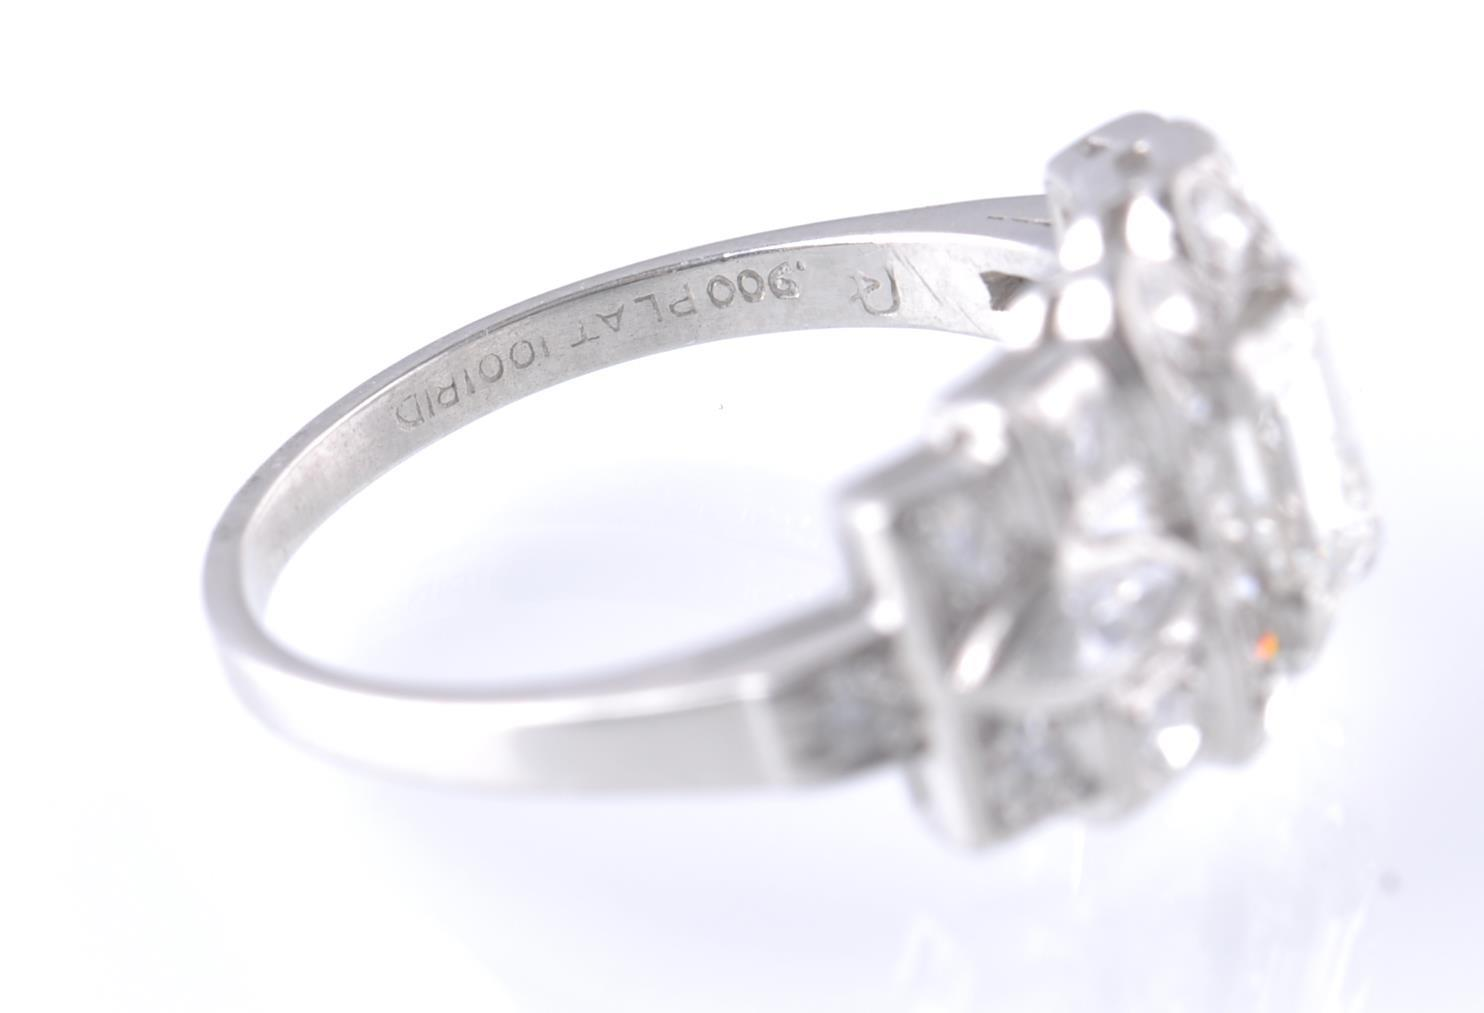 ART DECO PLATINUM AND DIAMOND RING EMERALD AND MAR - Image 5 of 5